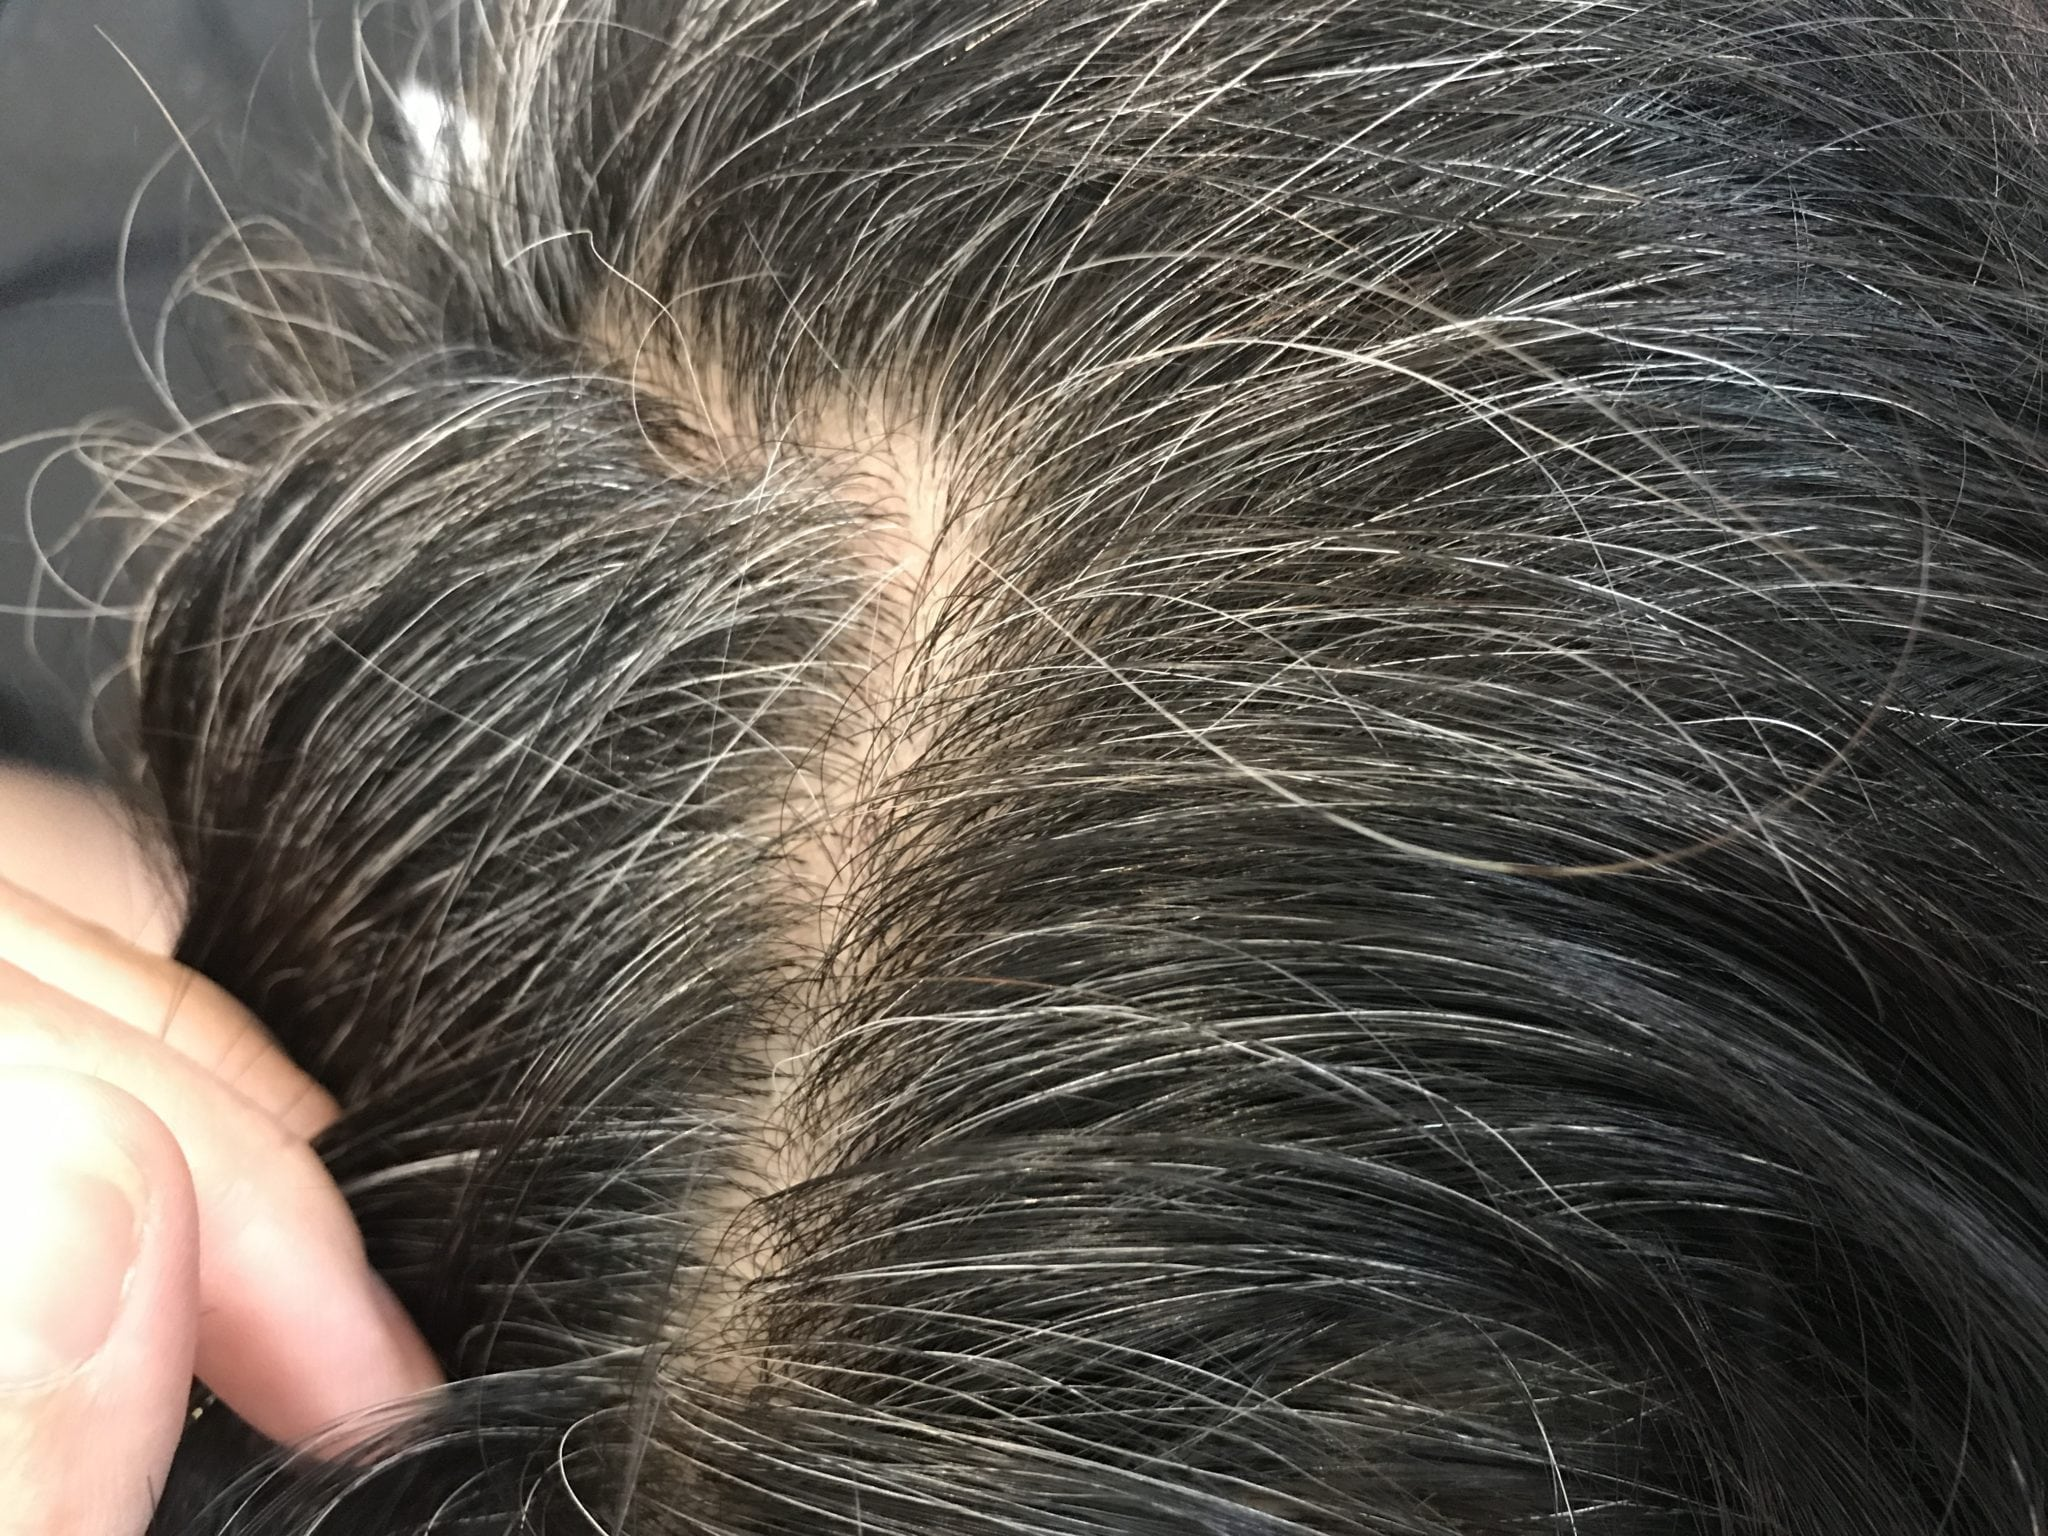 Greying of hair due to age